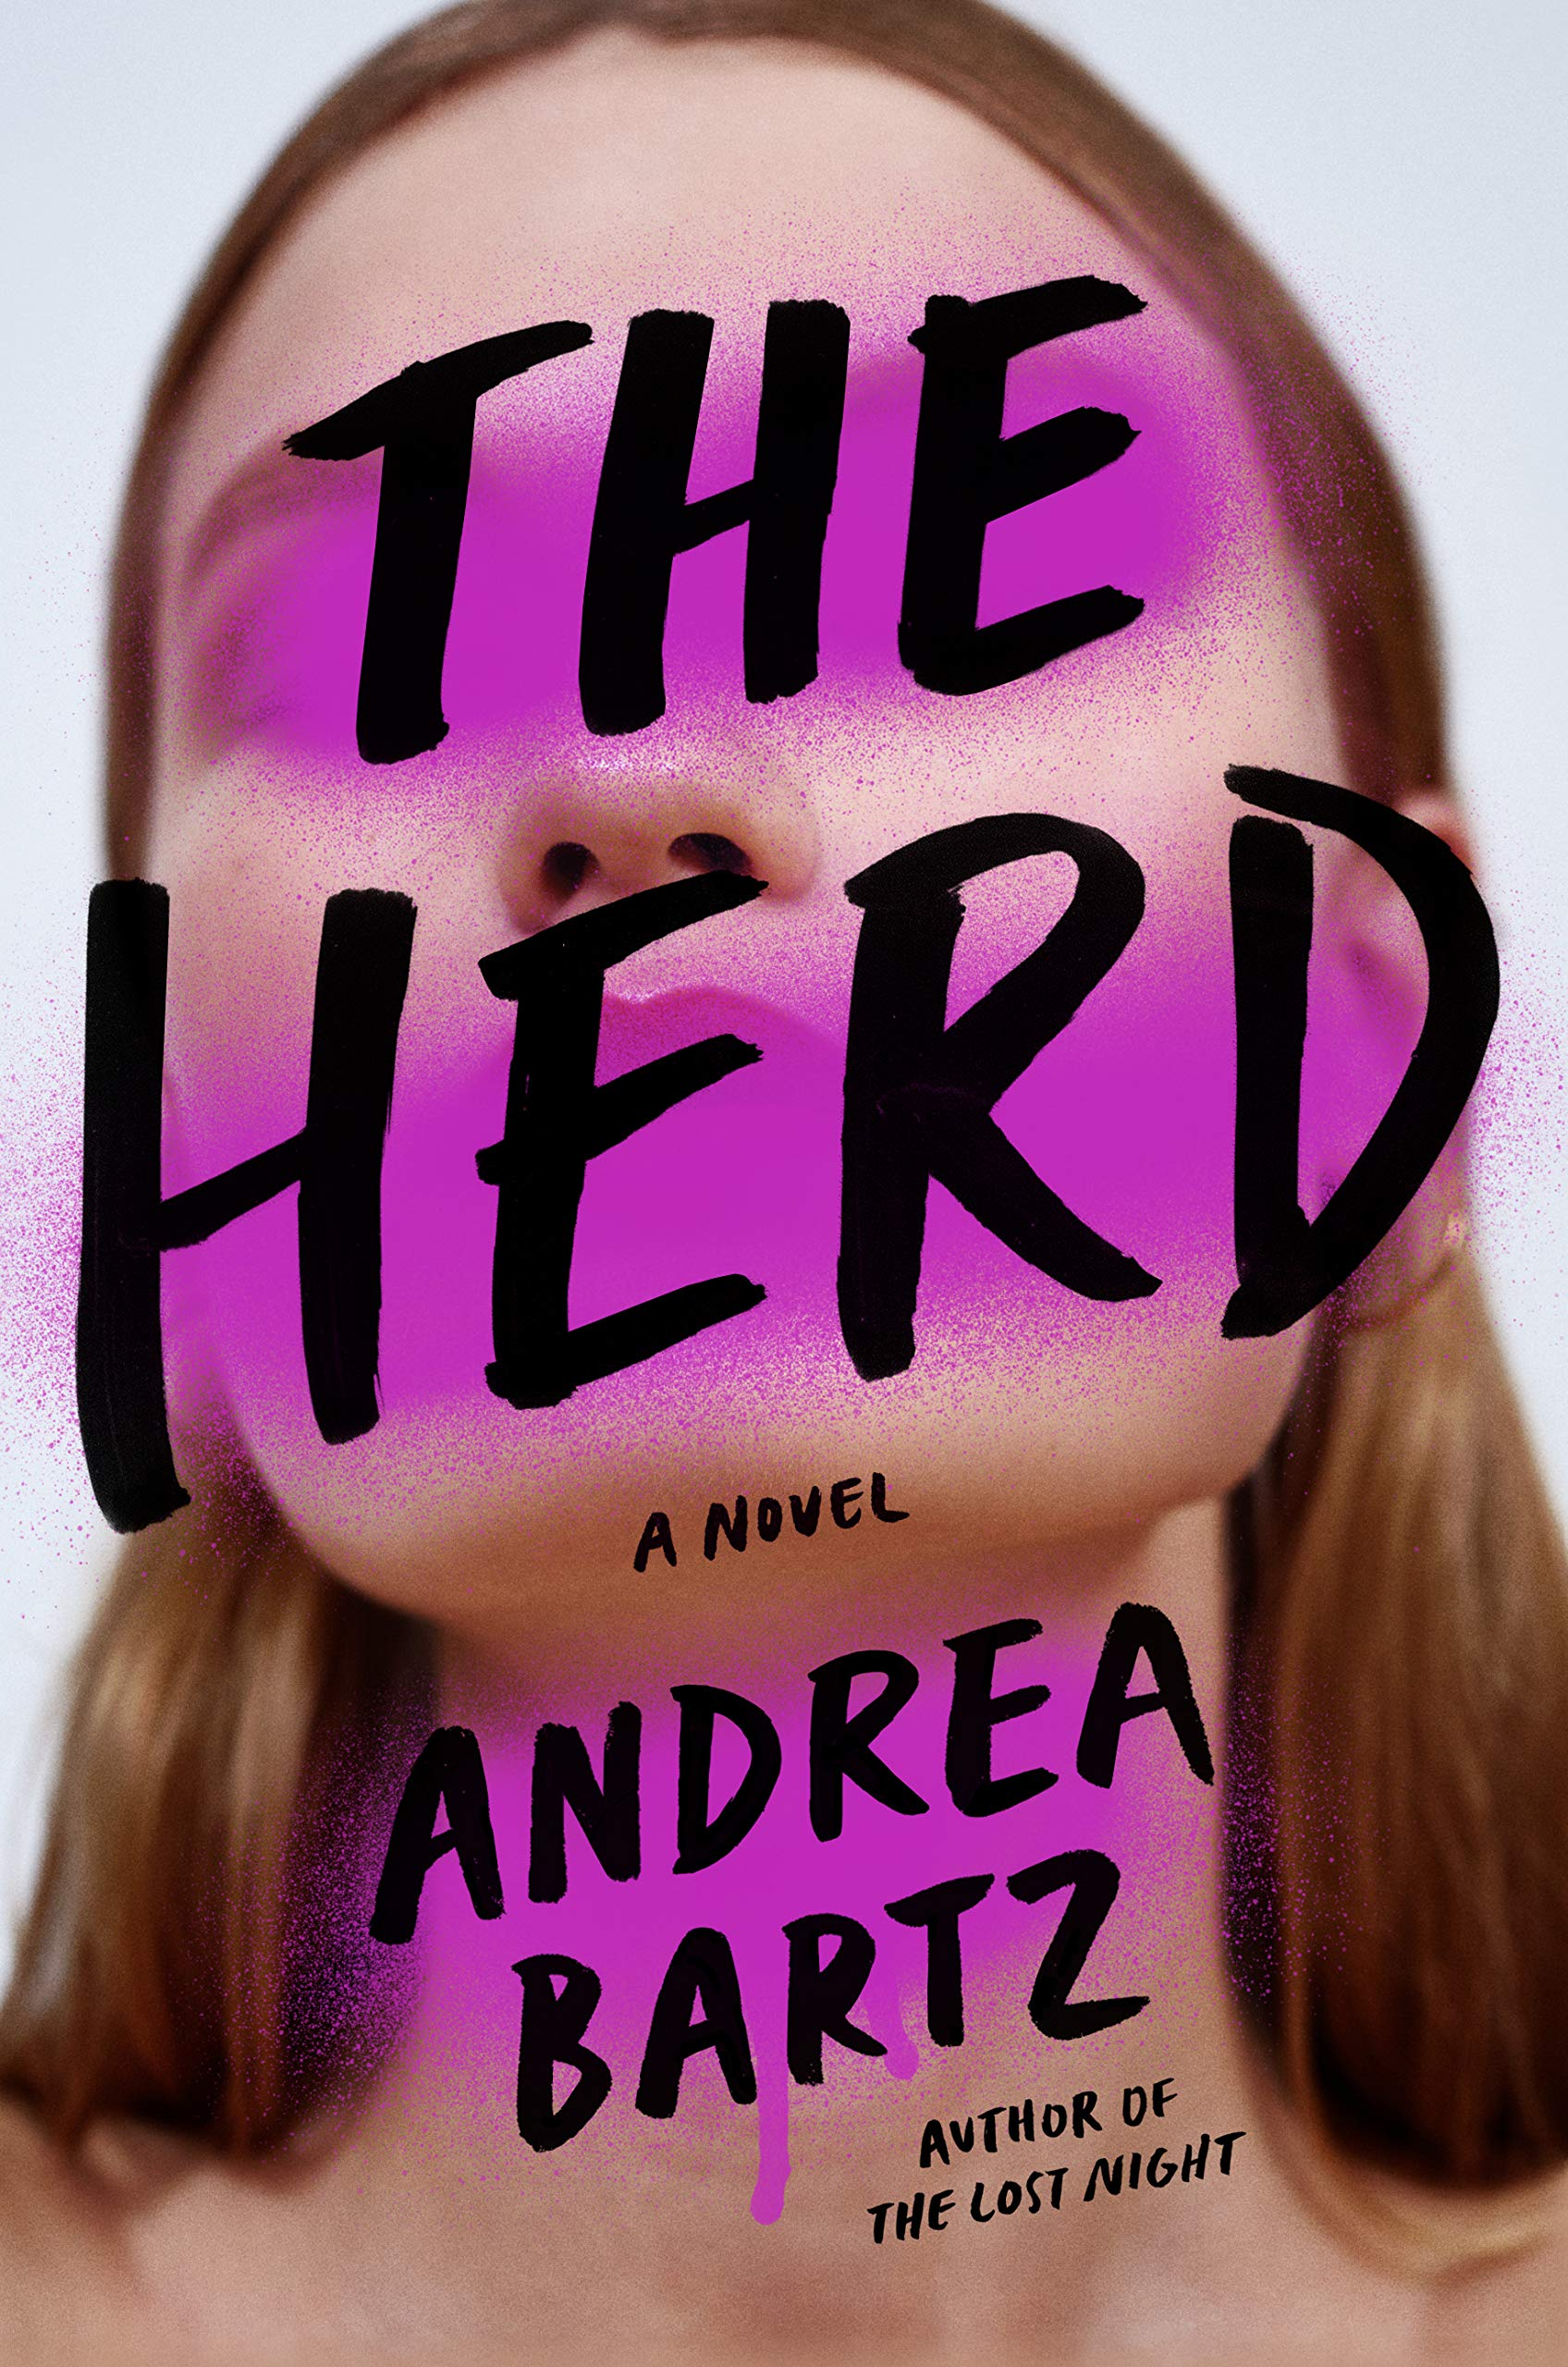 Image result for the herd andrea bartz""